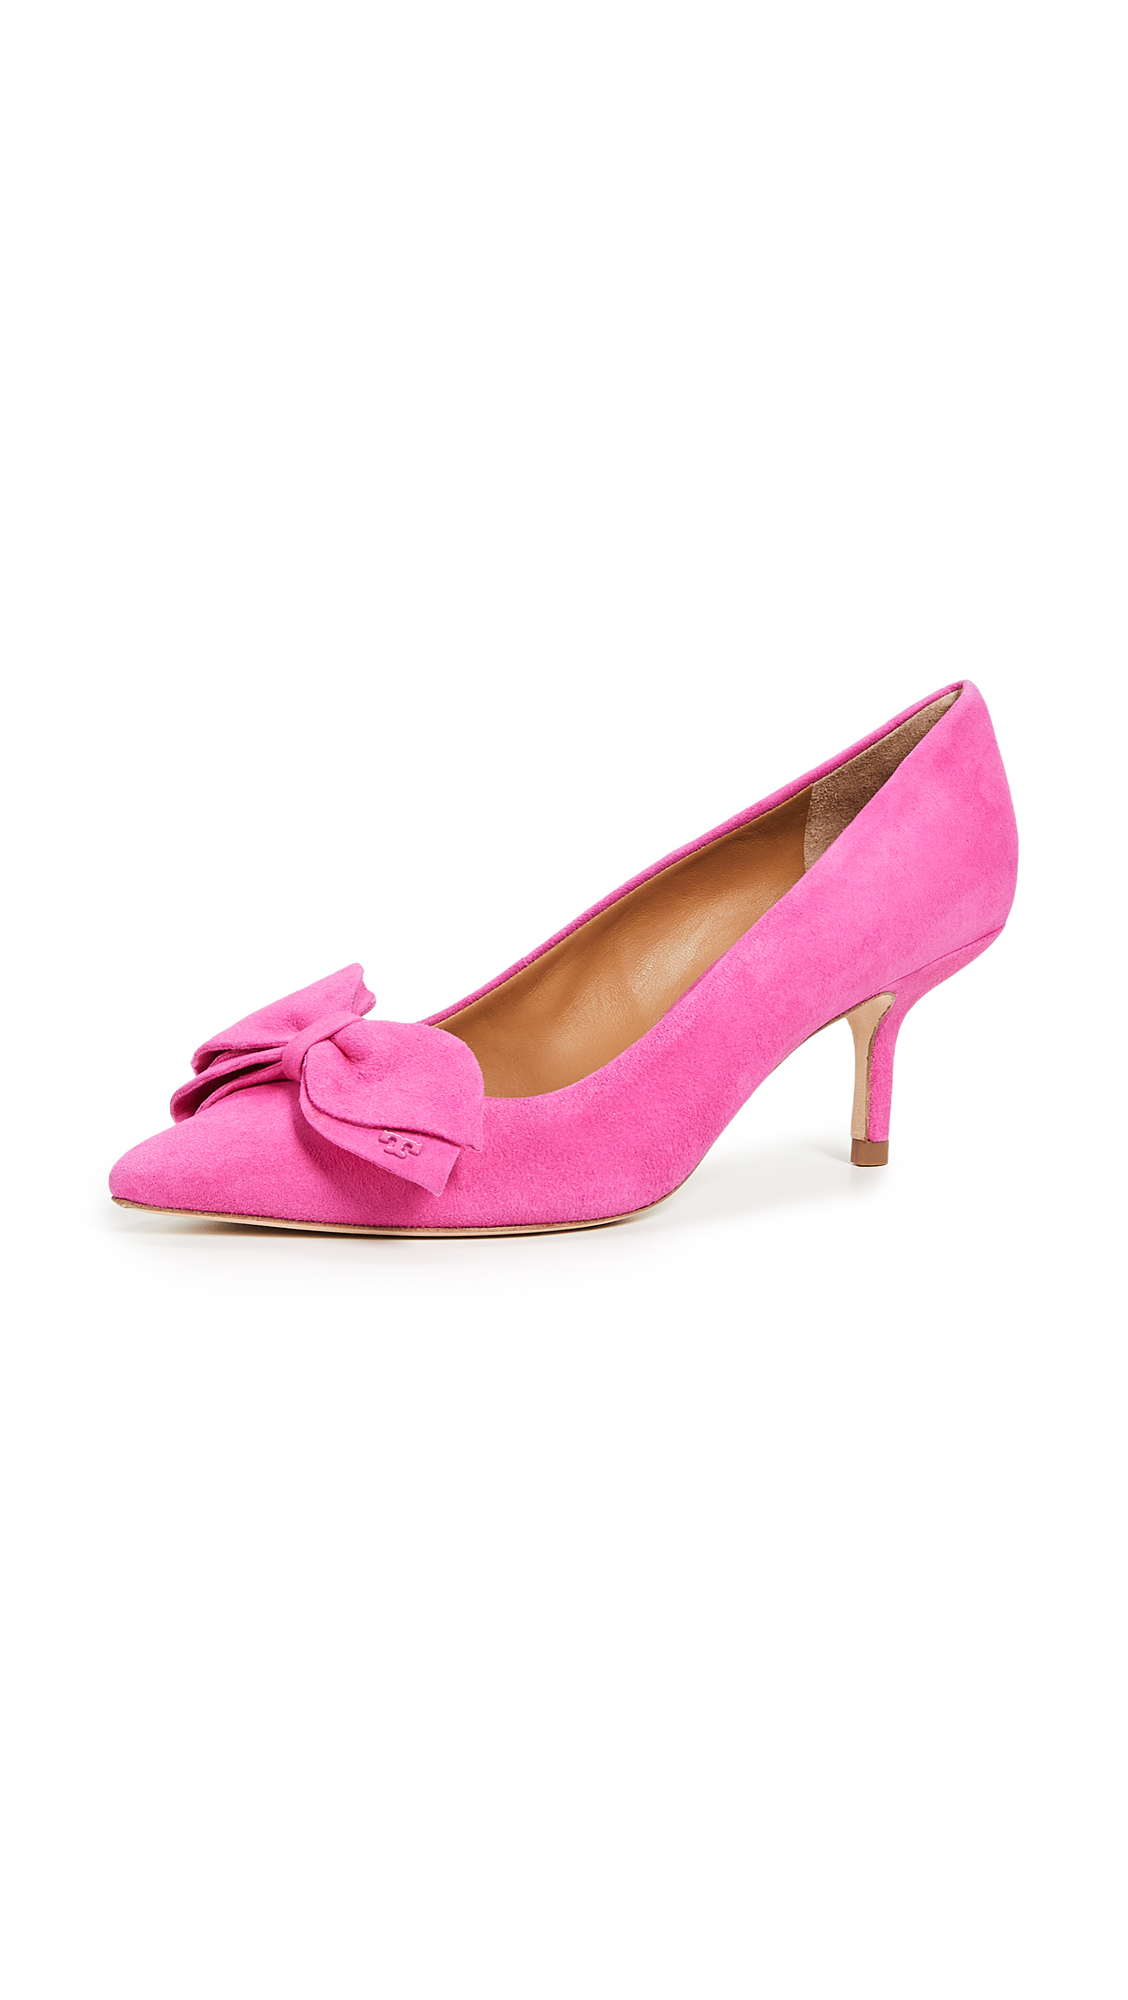 Photo of Tory Burch Rosalind Pumps - buy Tory Burch shoes